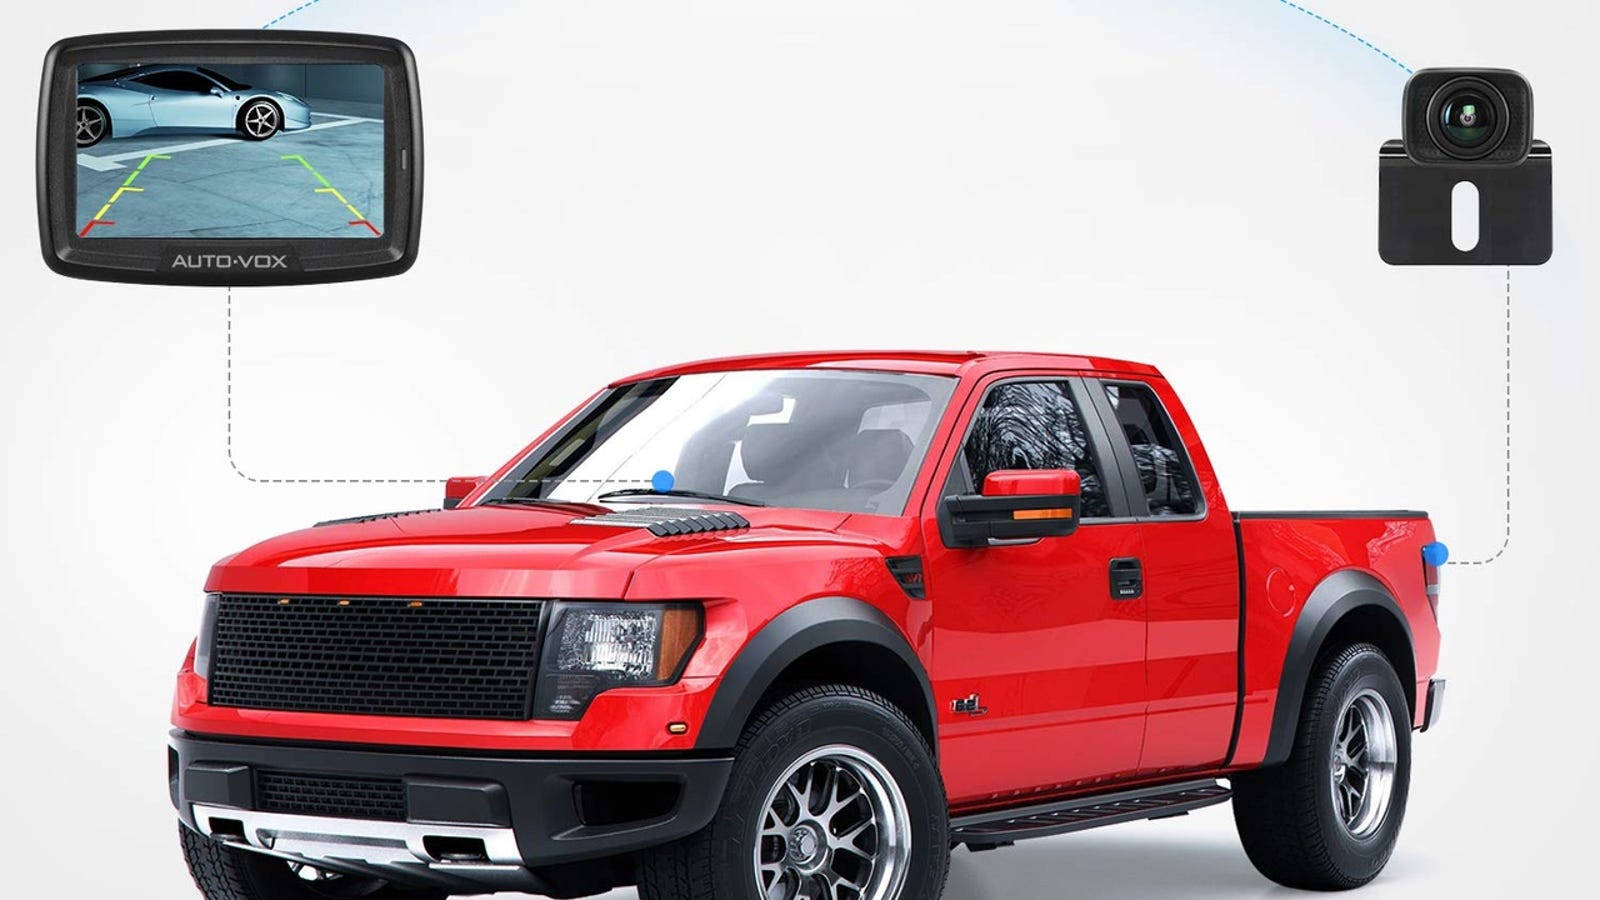 Add a Wireless Backup Camera to Any Car For $72